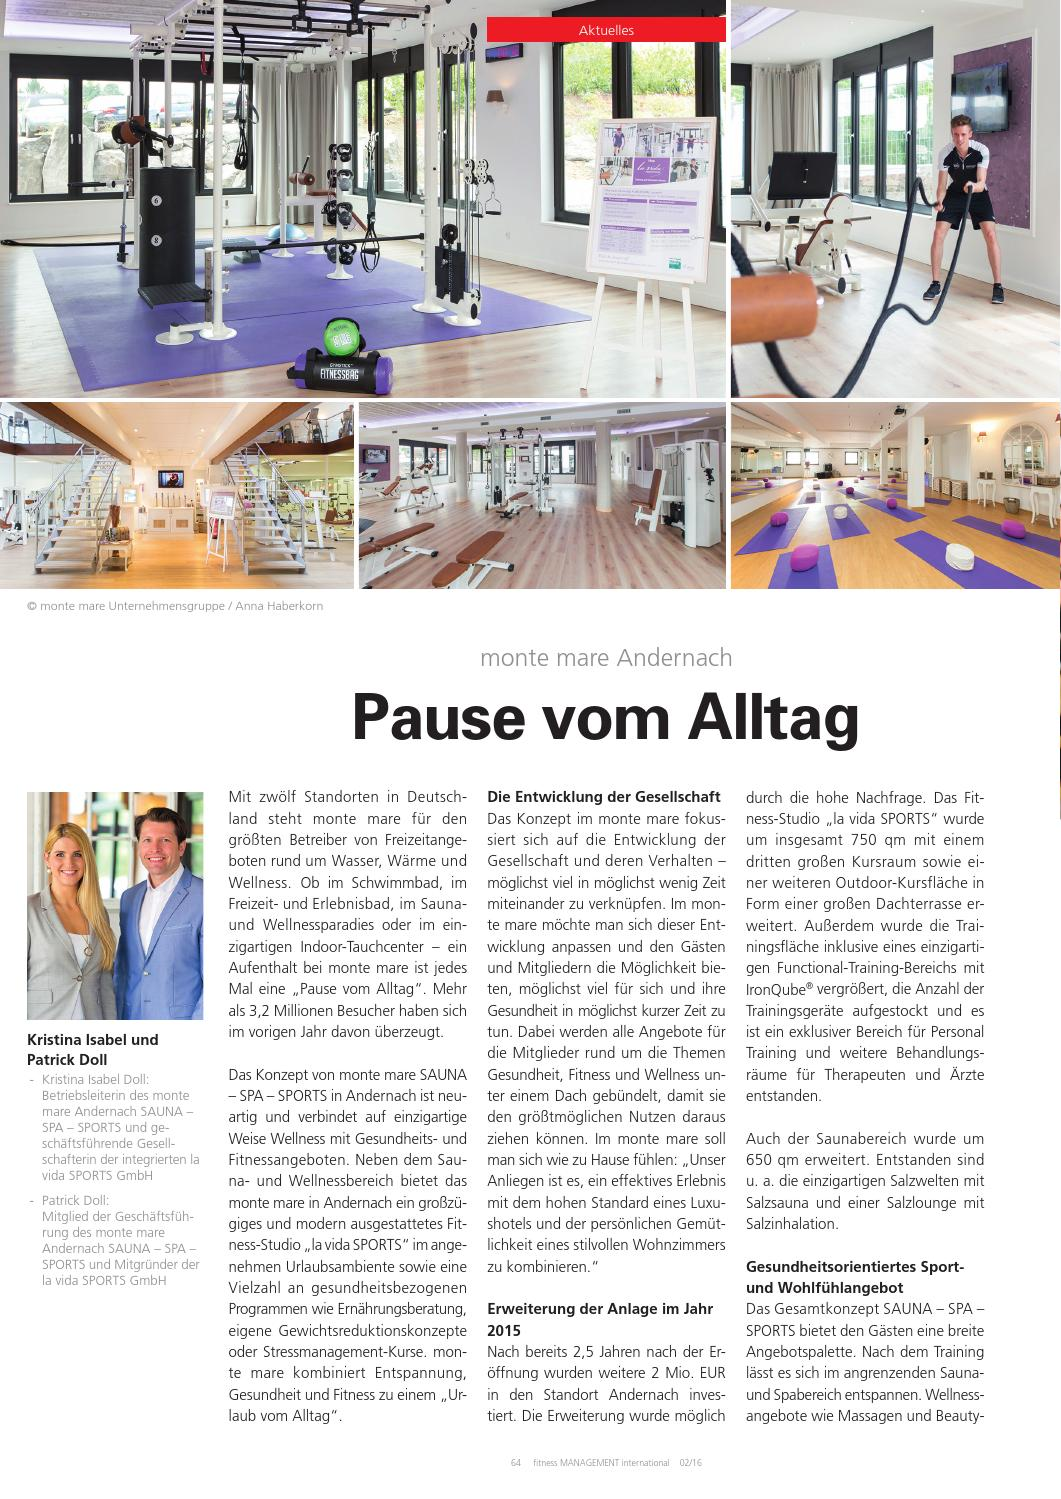 Fitness Management international: Pause vom Alltag bei monte mare - monte mare Andernach